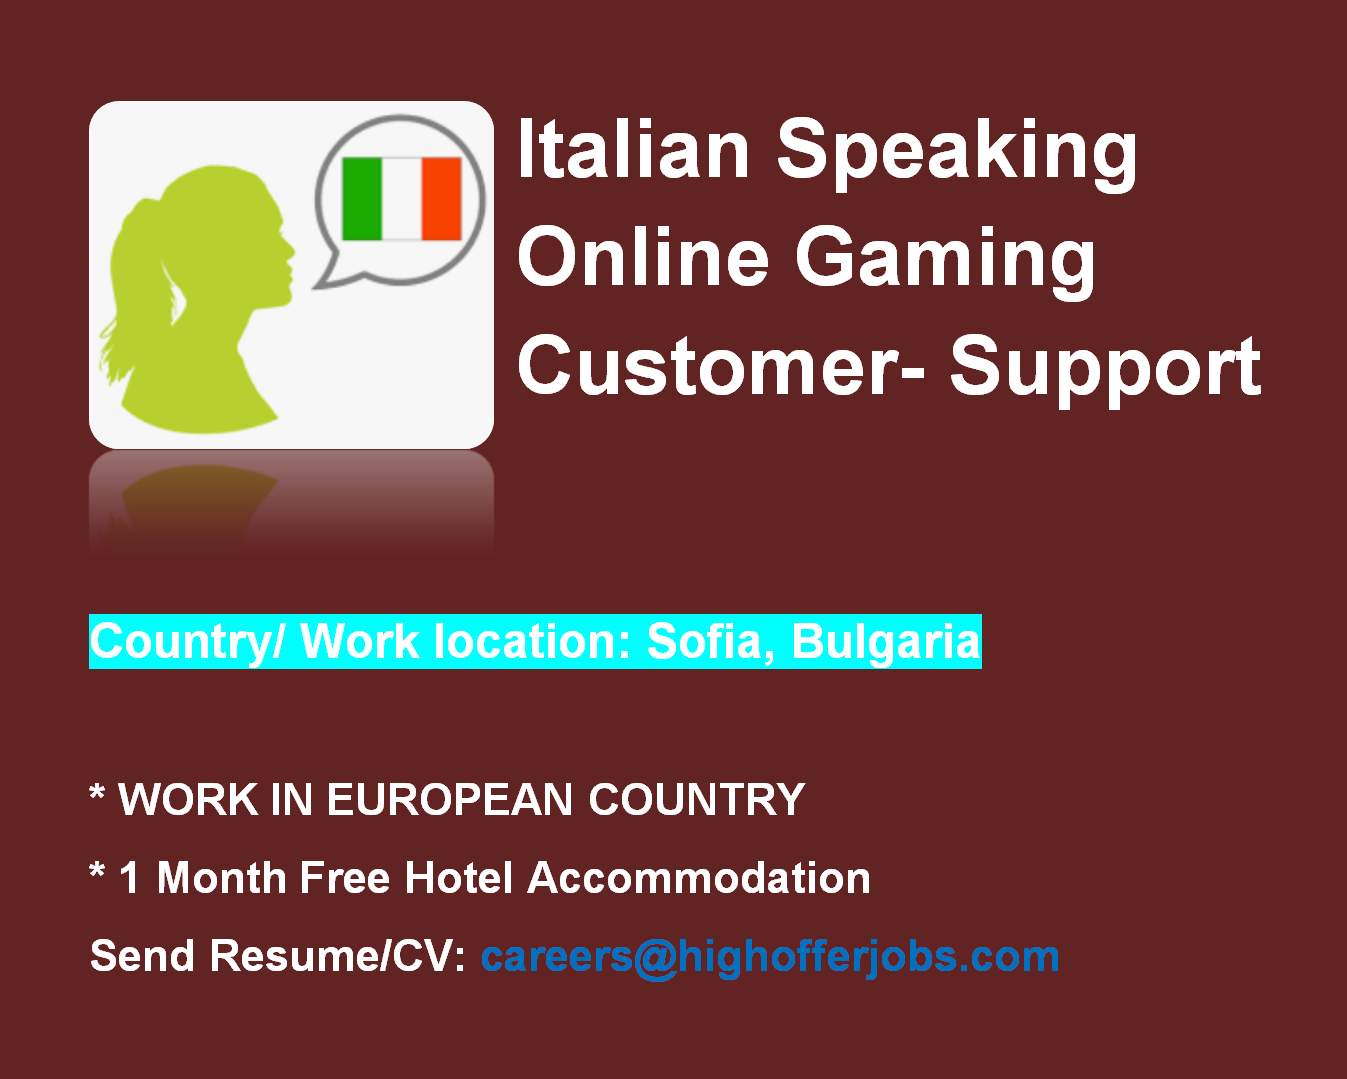 Technical Support Agent - Italian Speaking - Athens